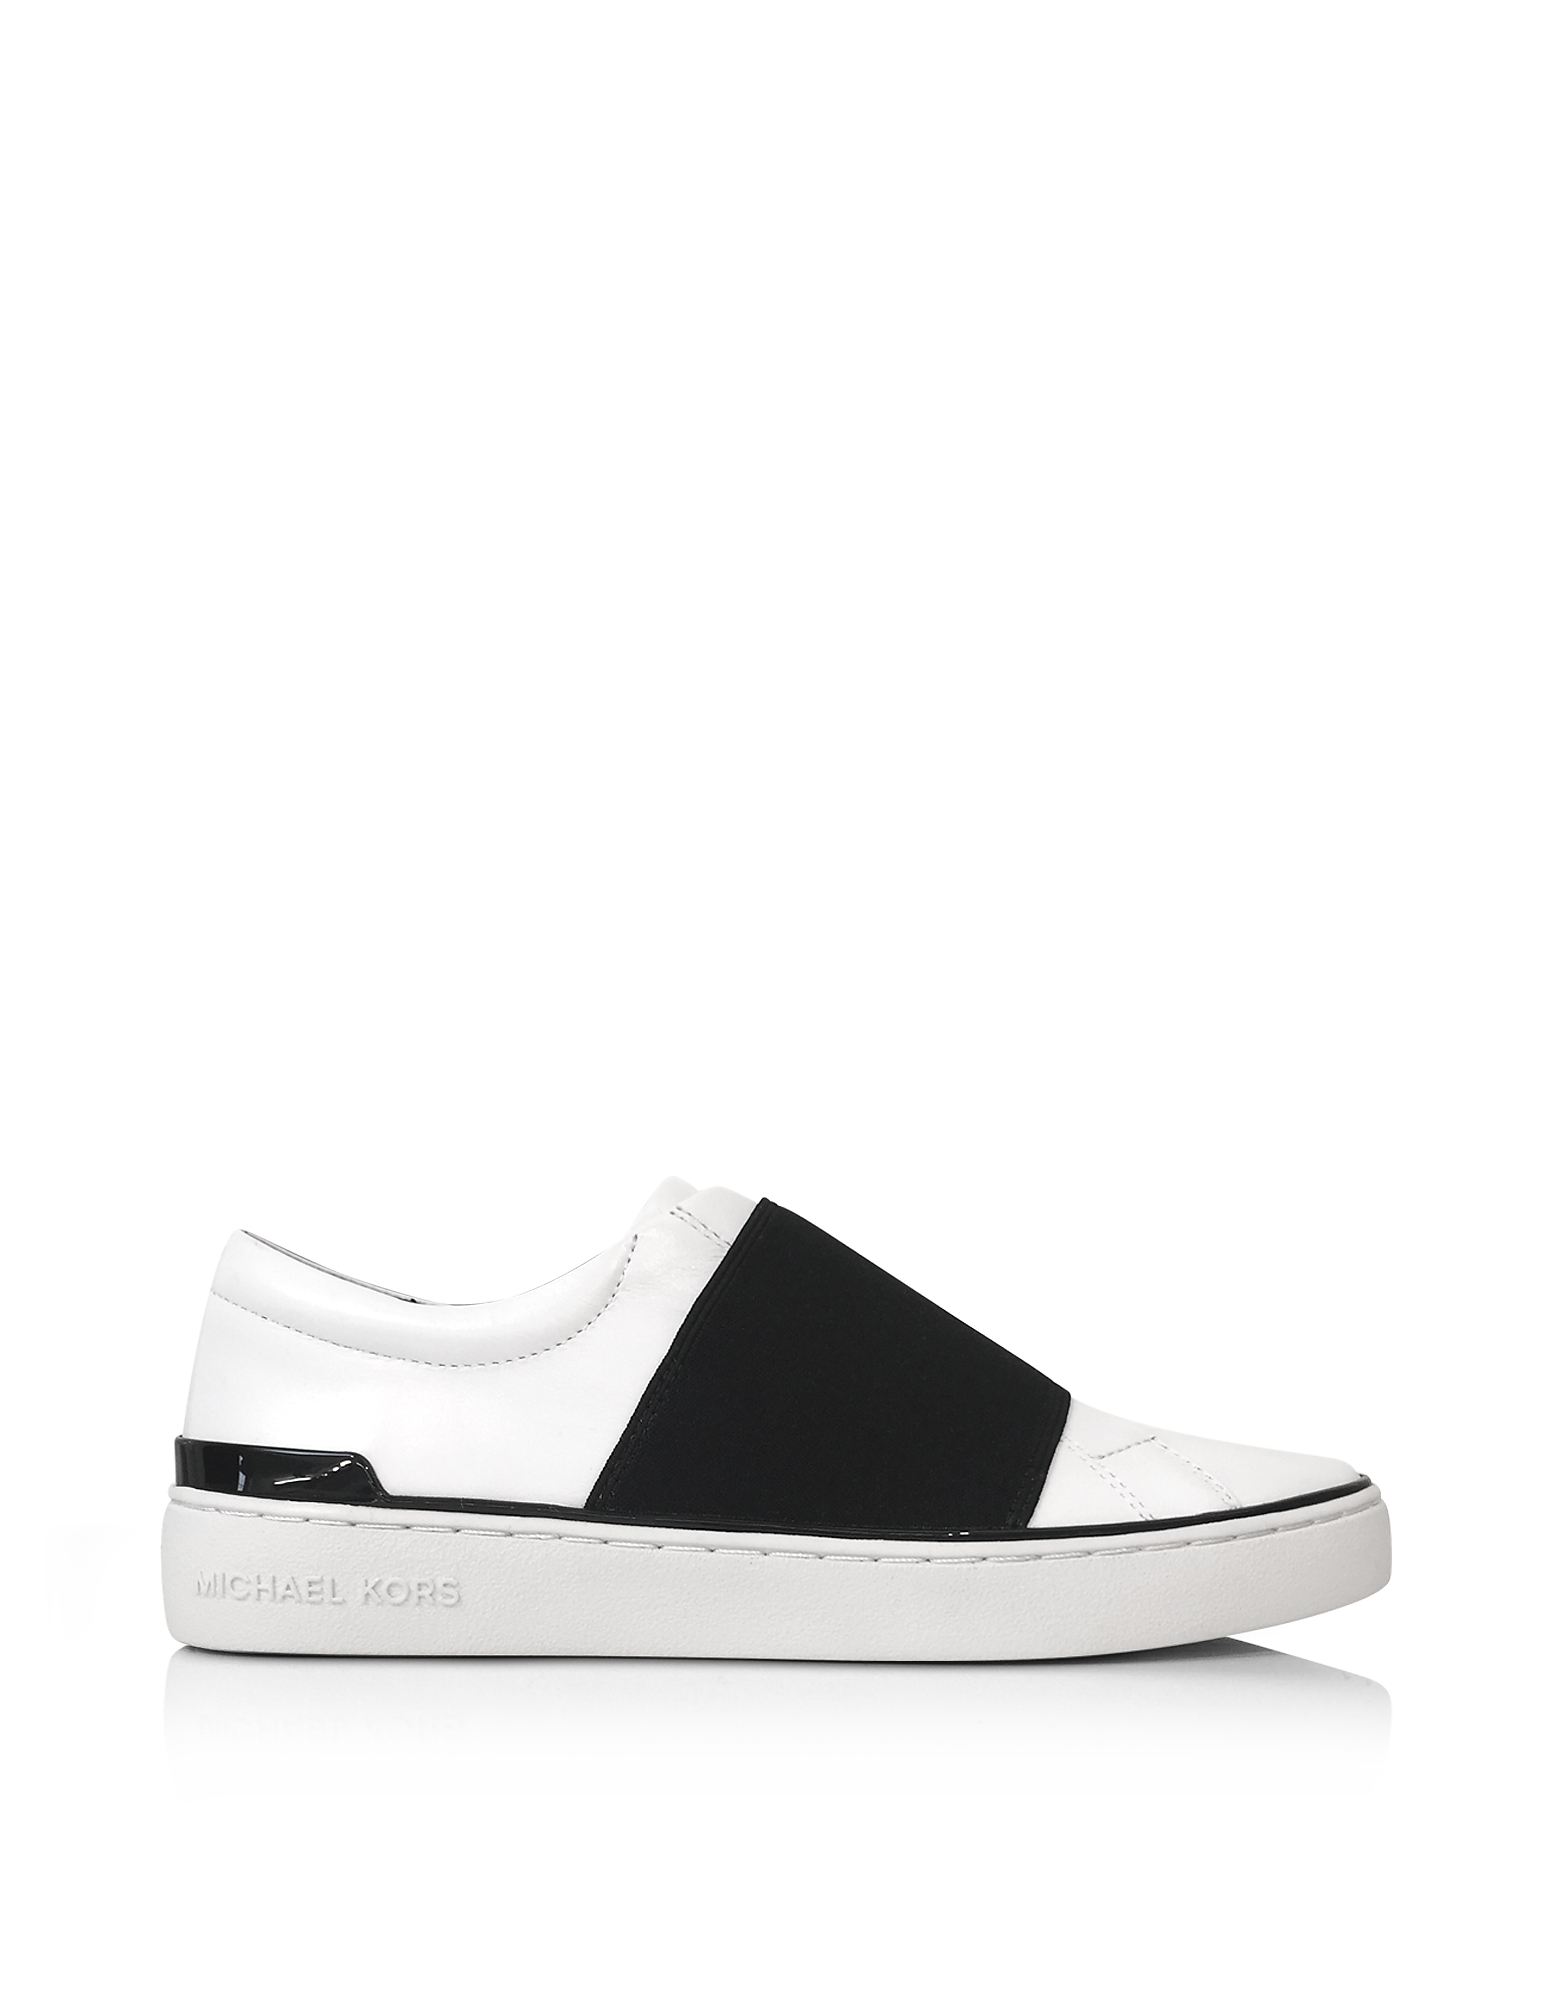 Michael Kors Shoes, Vaughn Optic White Leather Slip On Sneakers